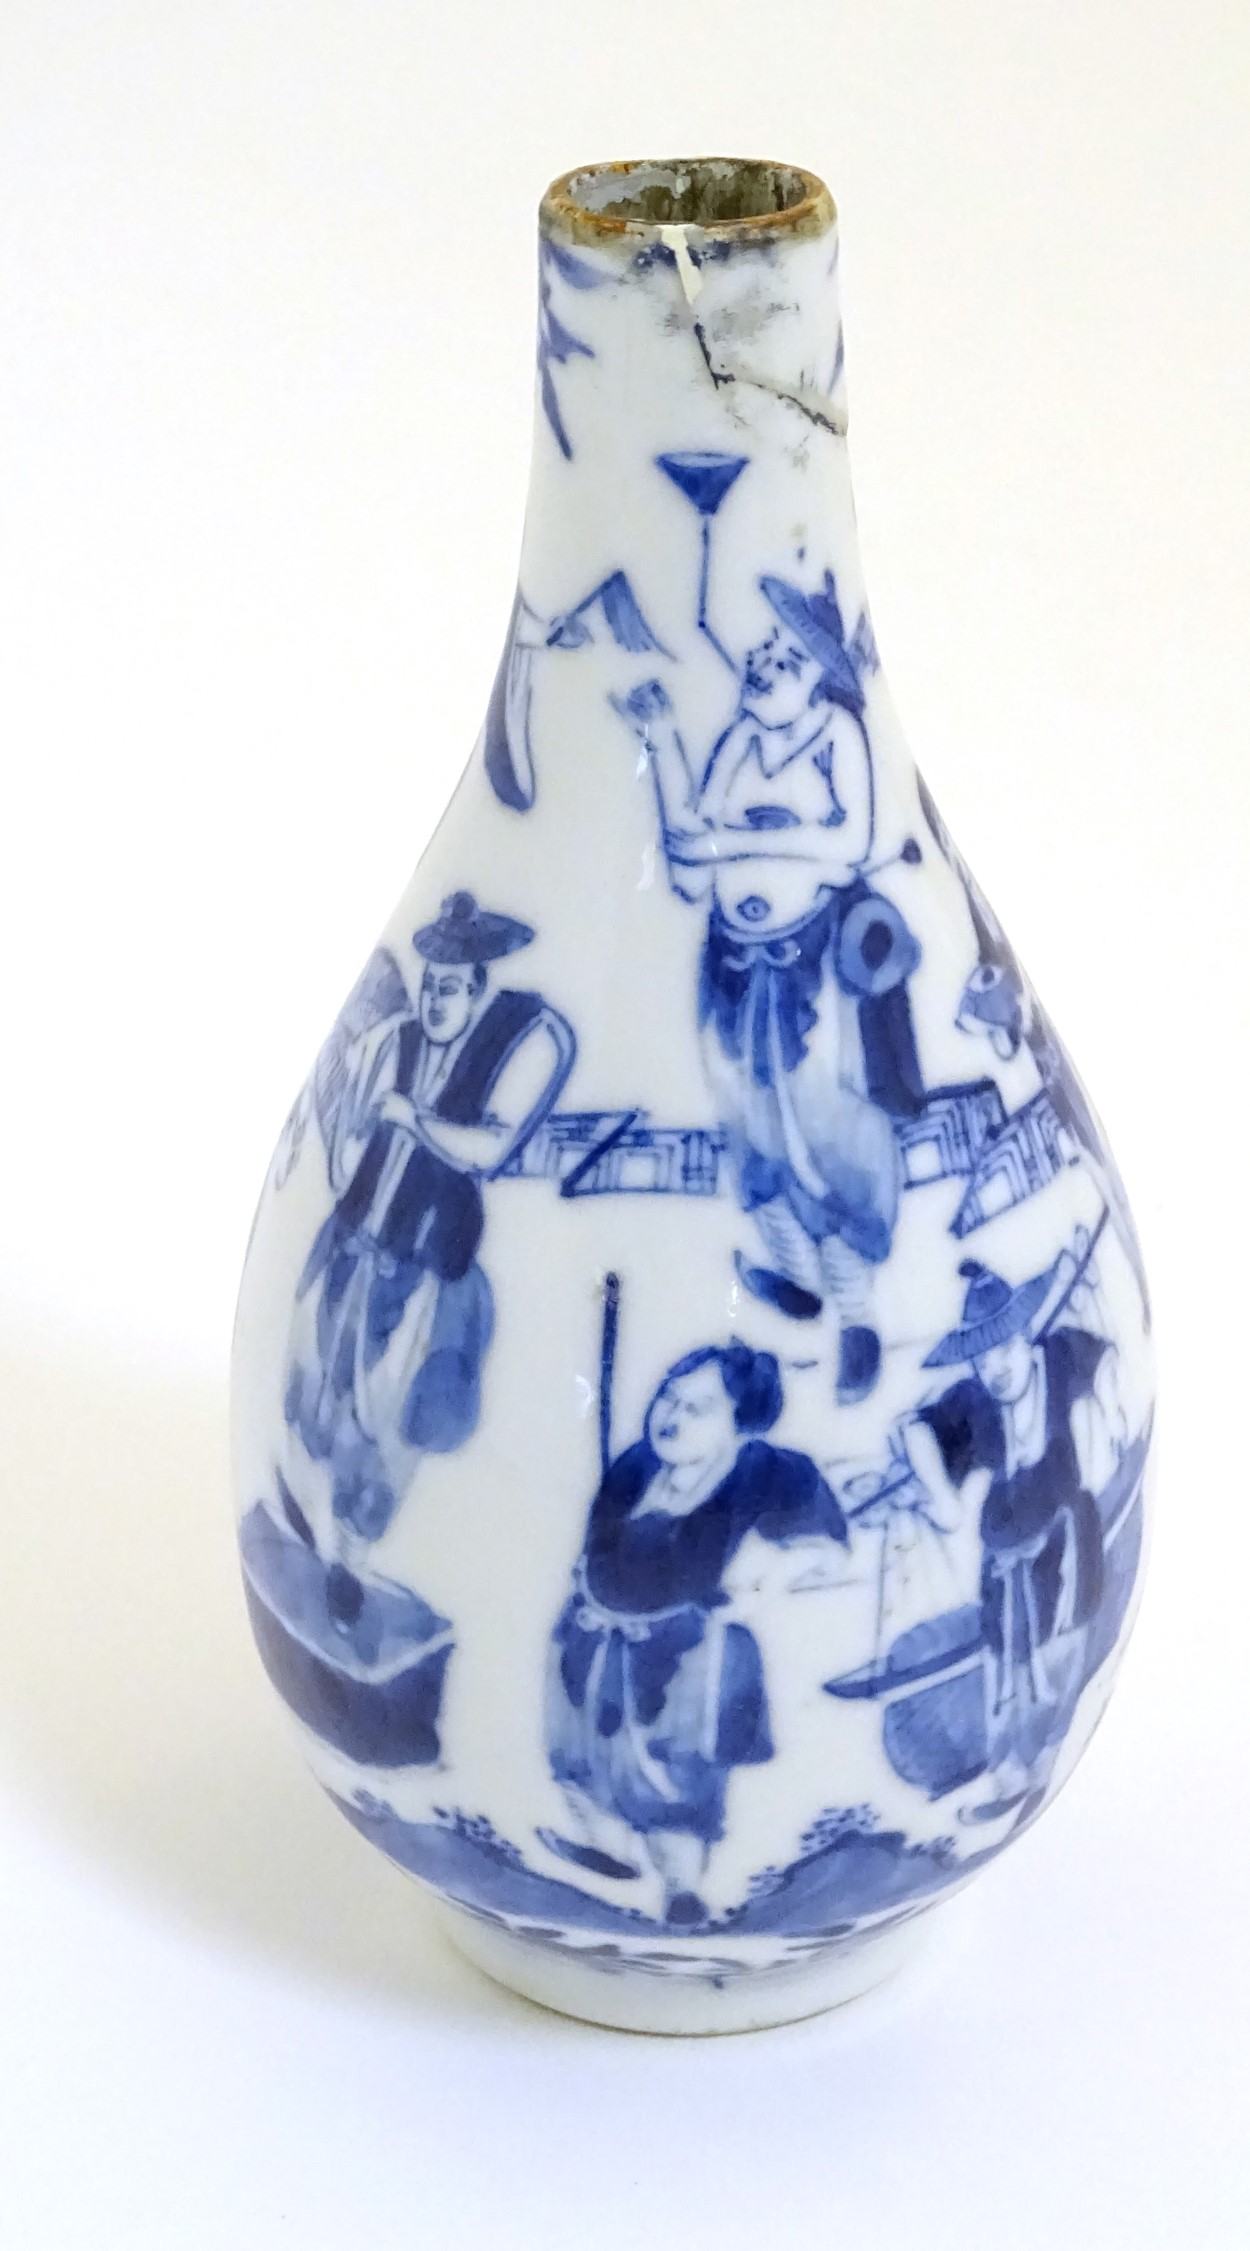 Lot 3 - An 18thC Chinese Tianqiu pear-shaped blue and white vase with figures in a pagoda garden setting at